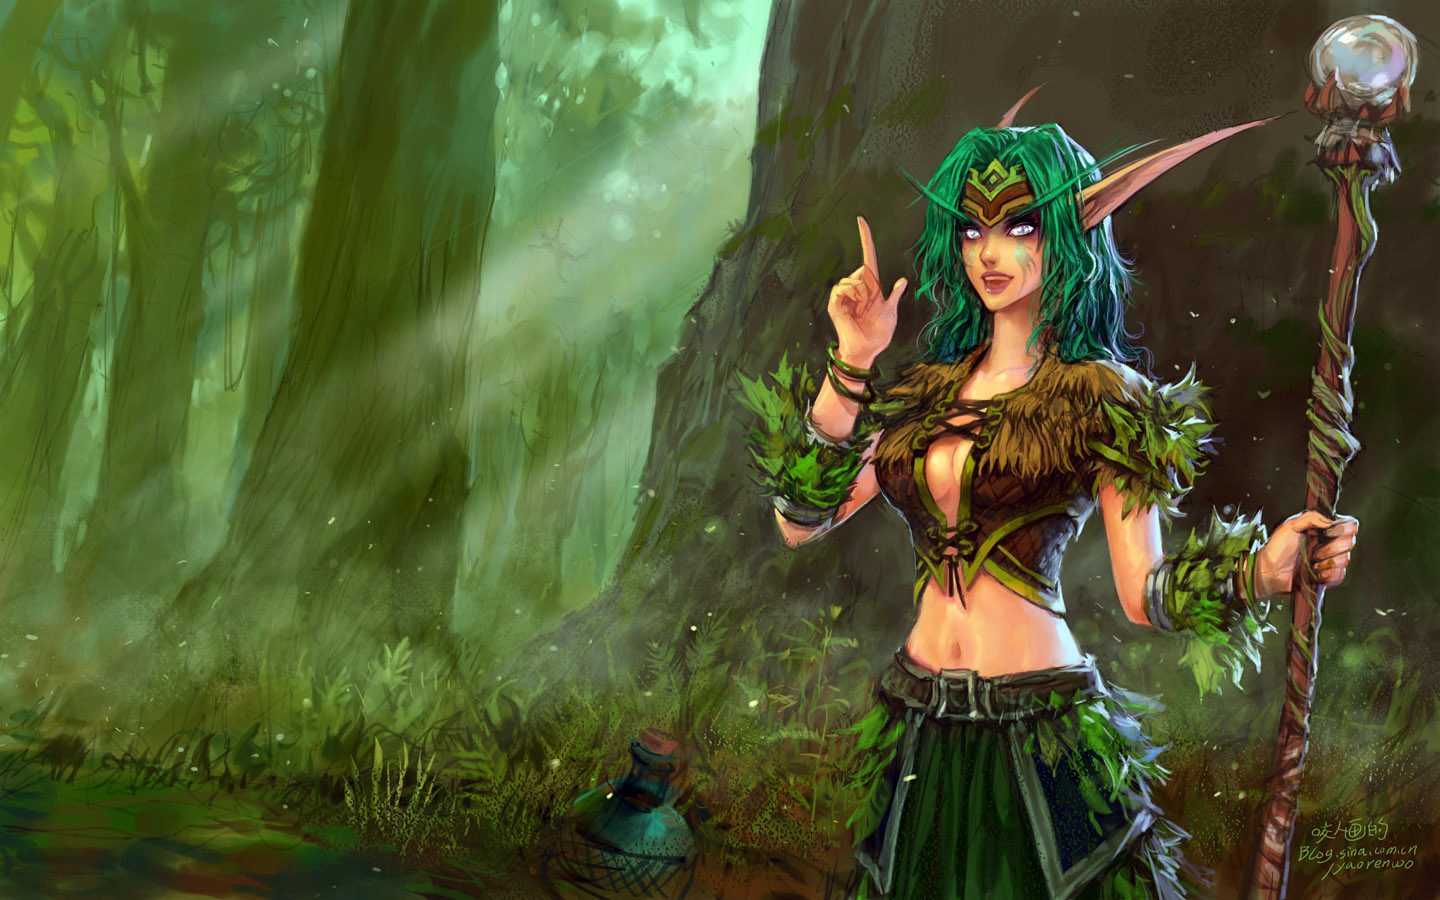 High Resolution Wallpaper | Druid 1440x900 px